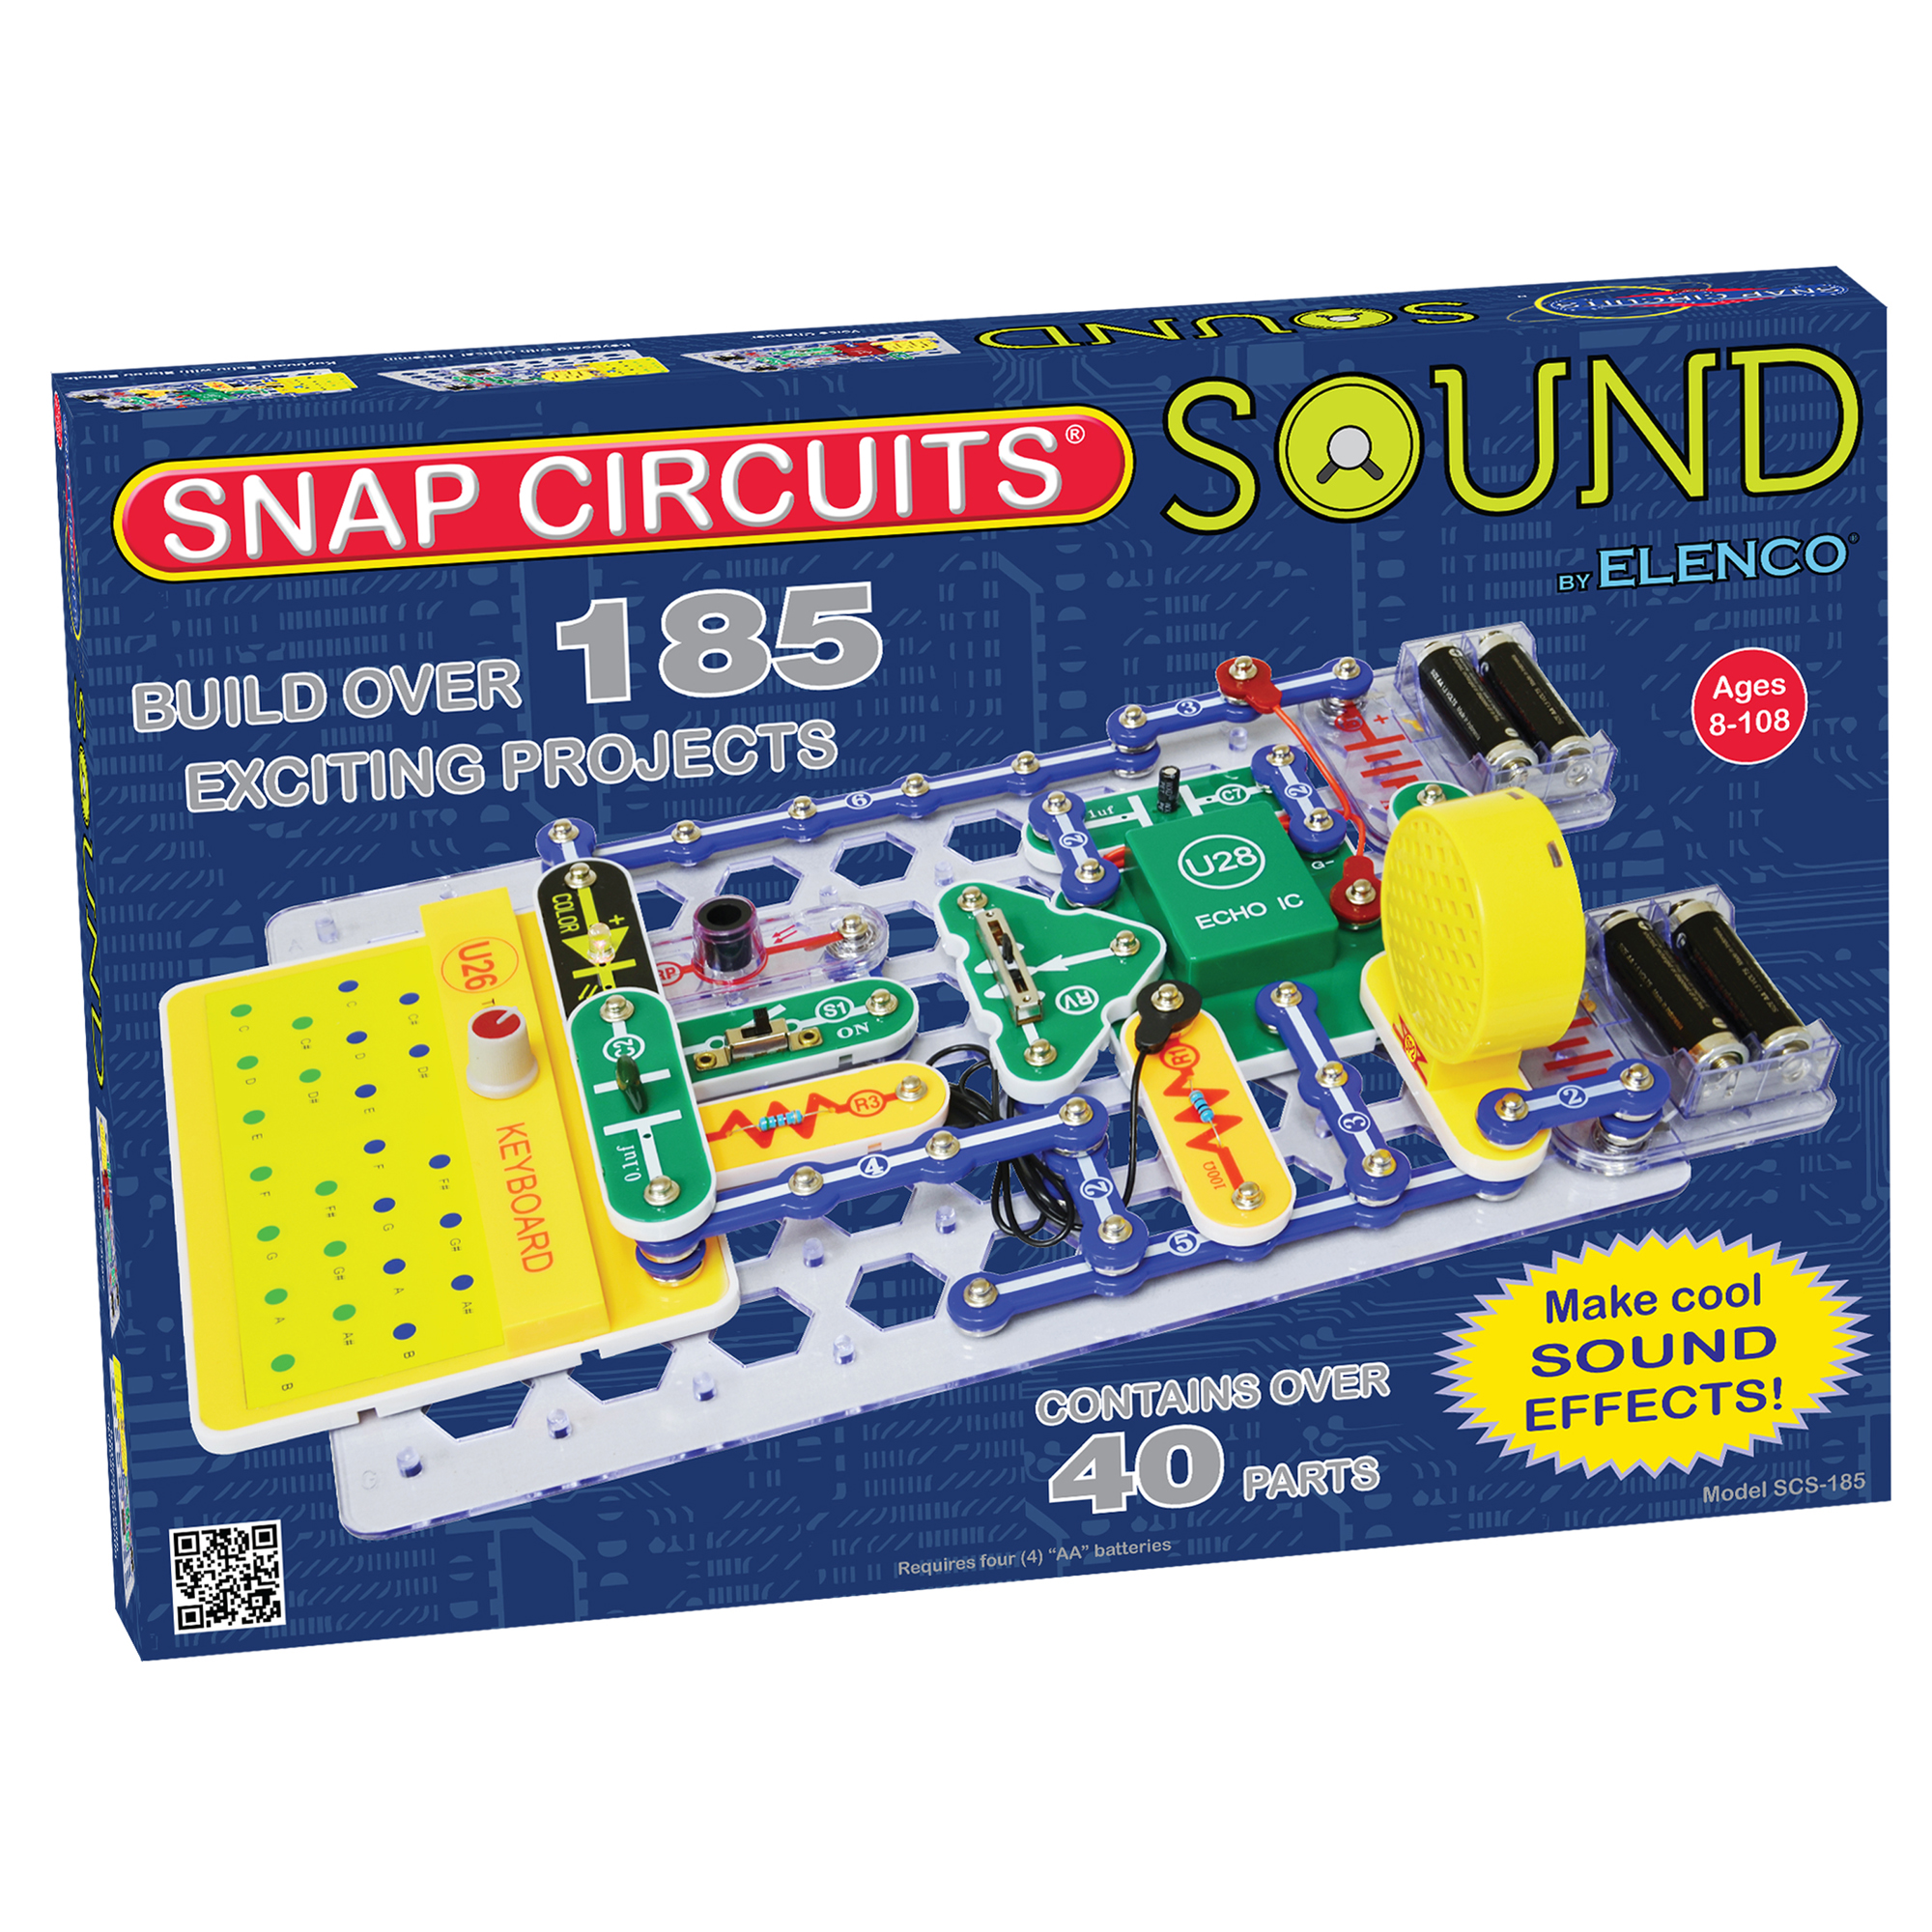 Snap Circuits Sound Elenco What Are